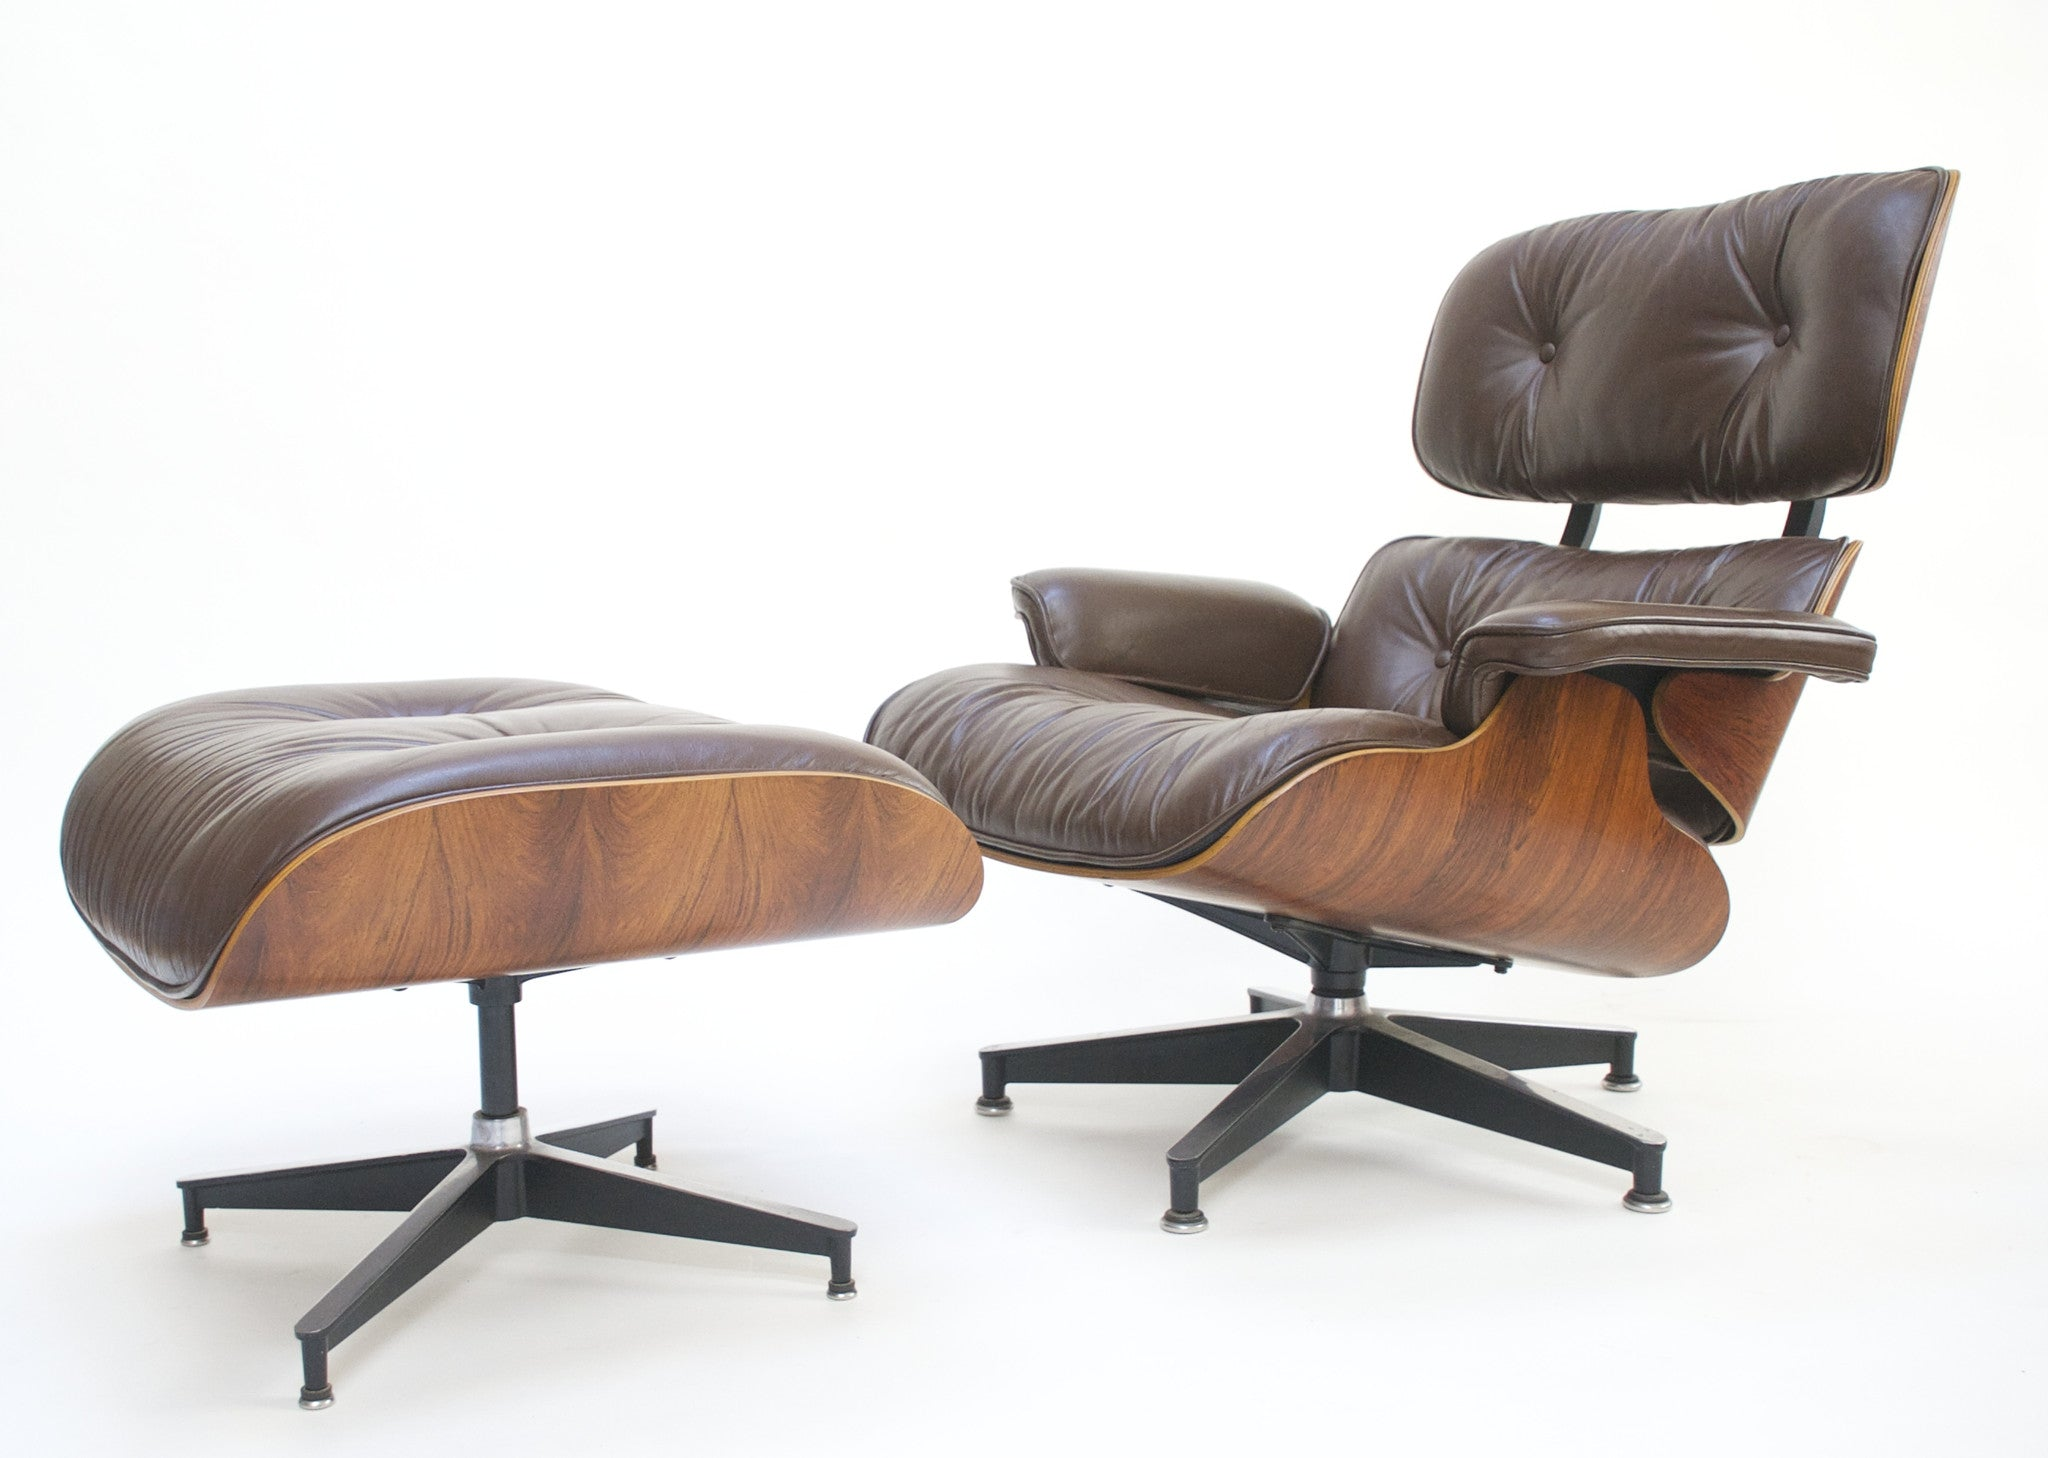 SOLD 1970u0027s Herman Miller Eames Lounge Chair U0026 Ottoman Rosewood 670 671  Brown